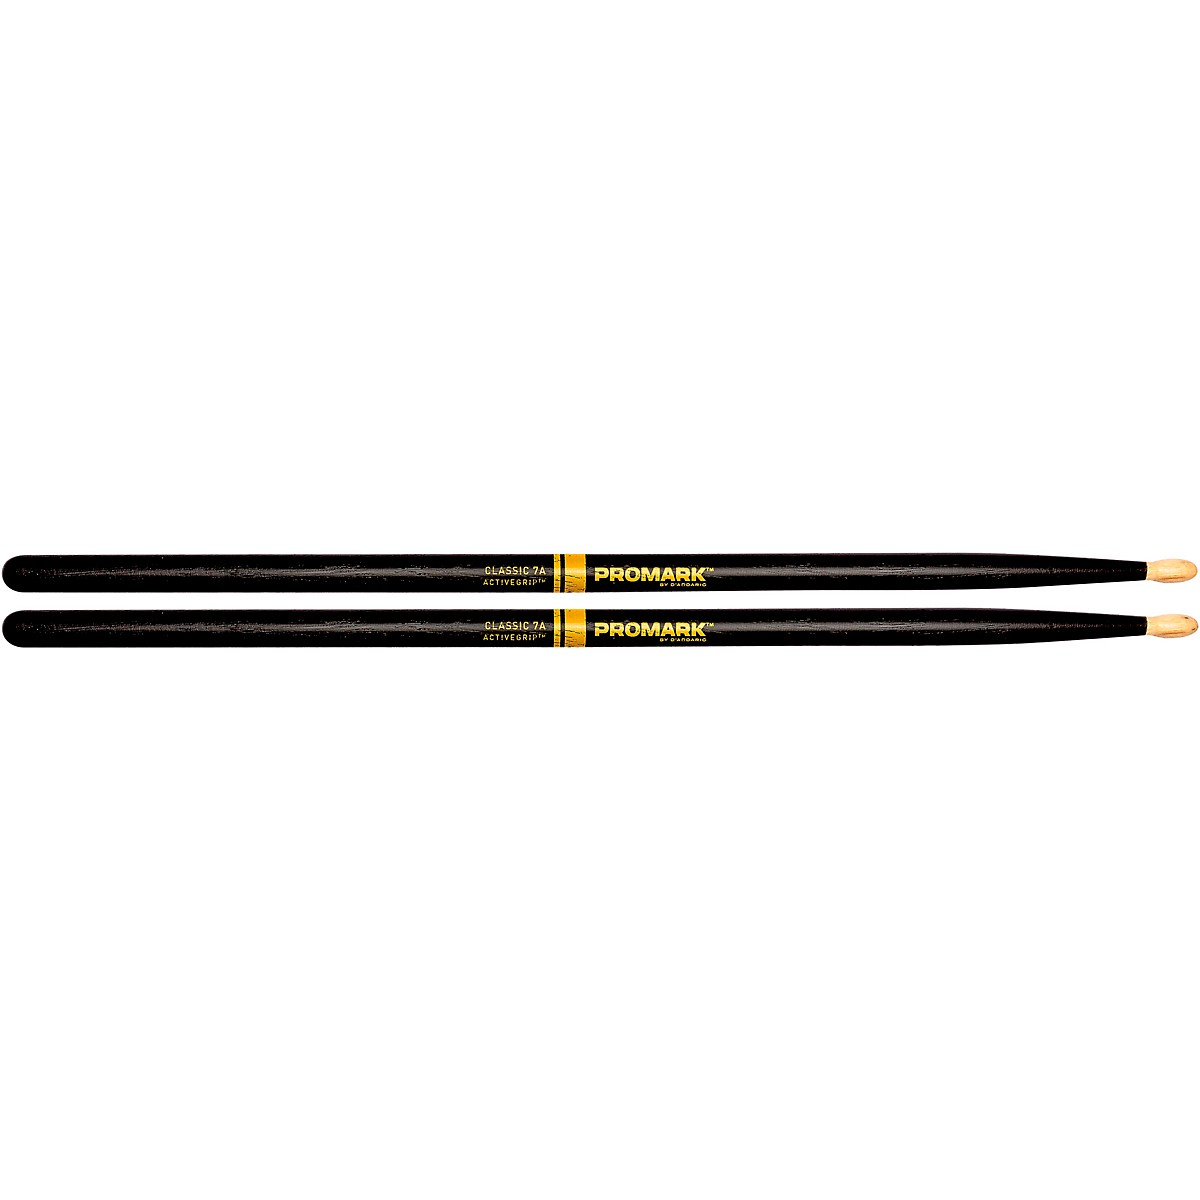 Promark Classic ActiveGrip Drum Sticks, Black